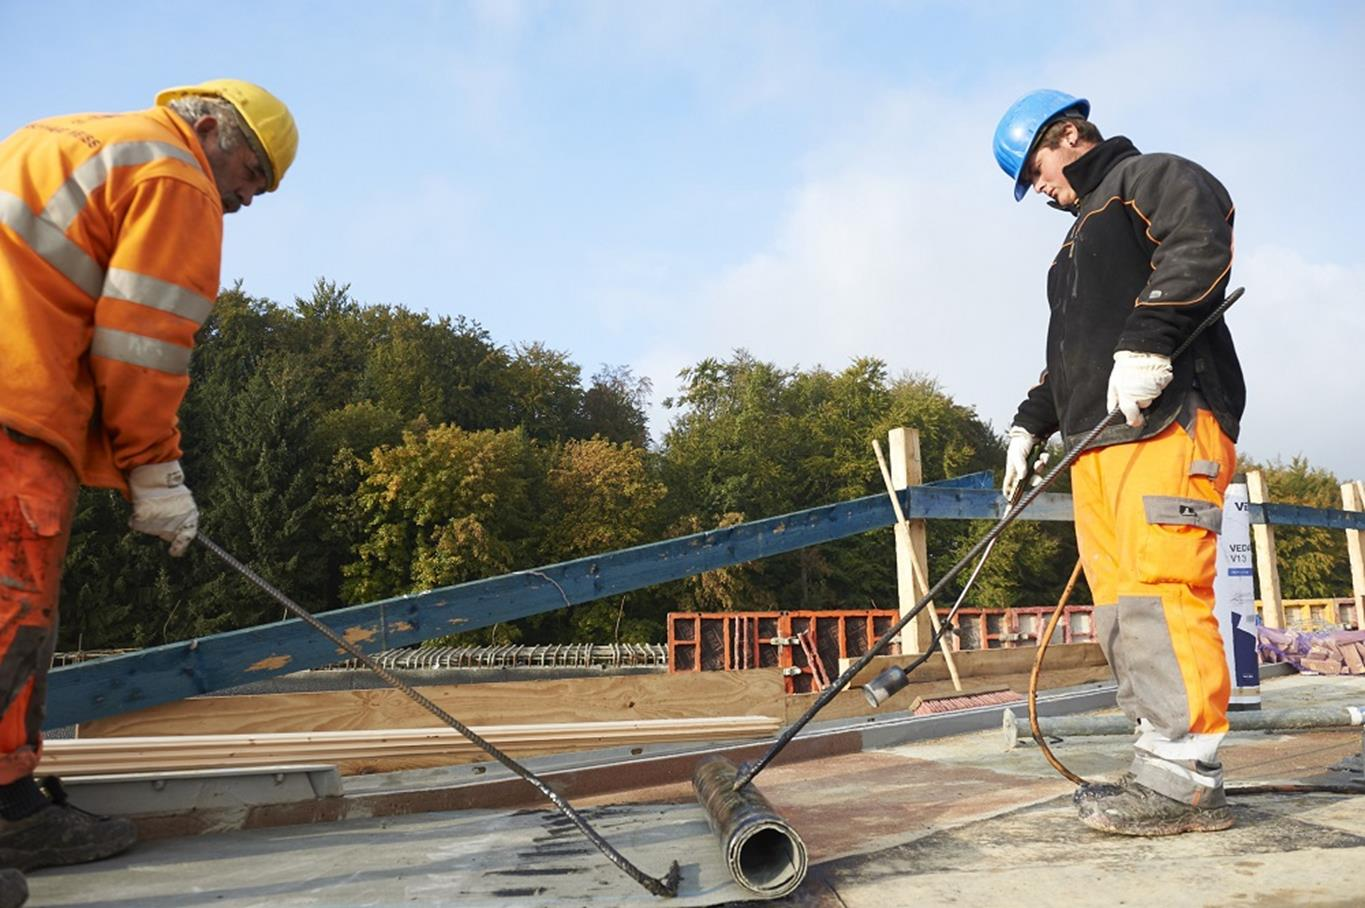 Two workmen working on a flat roof